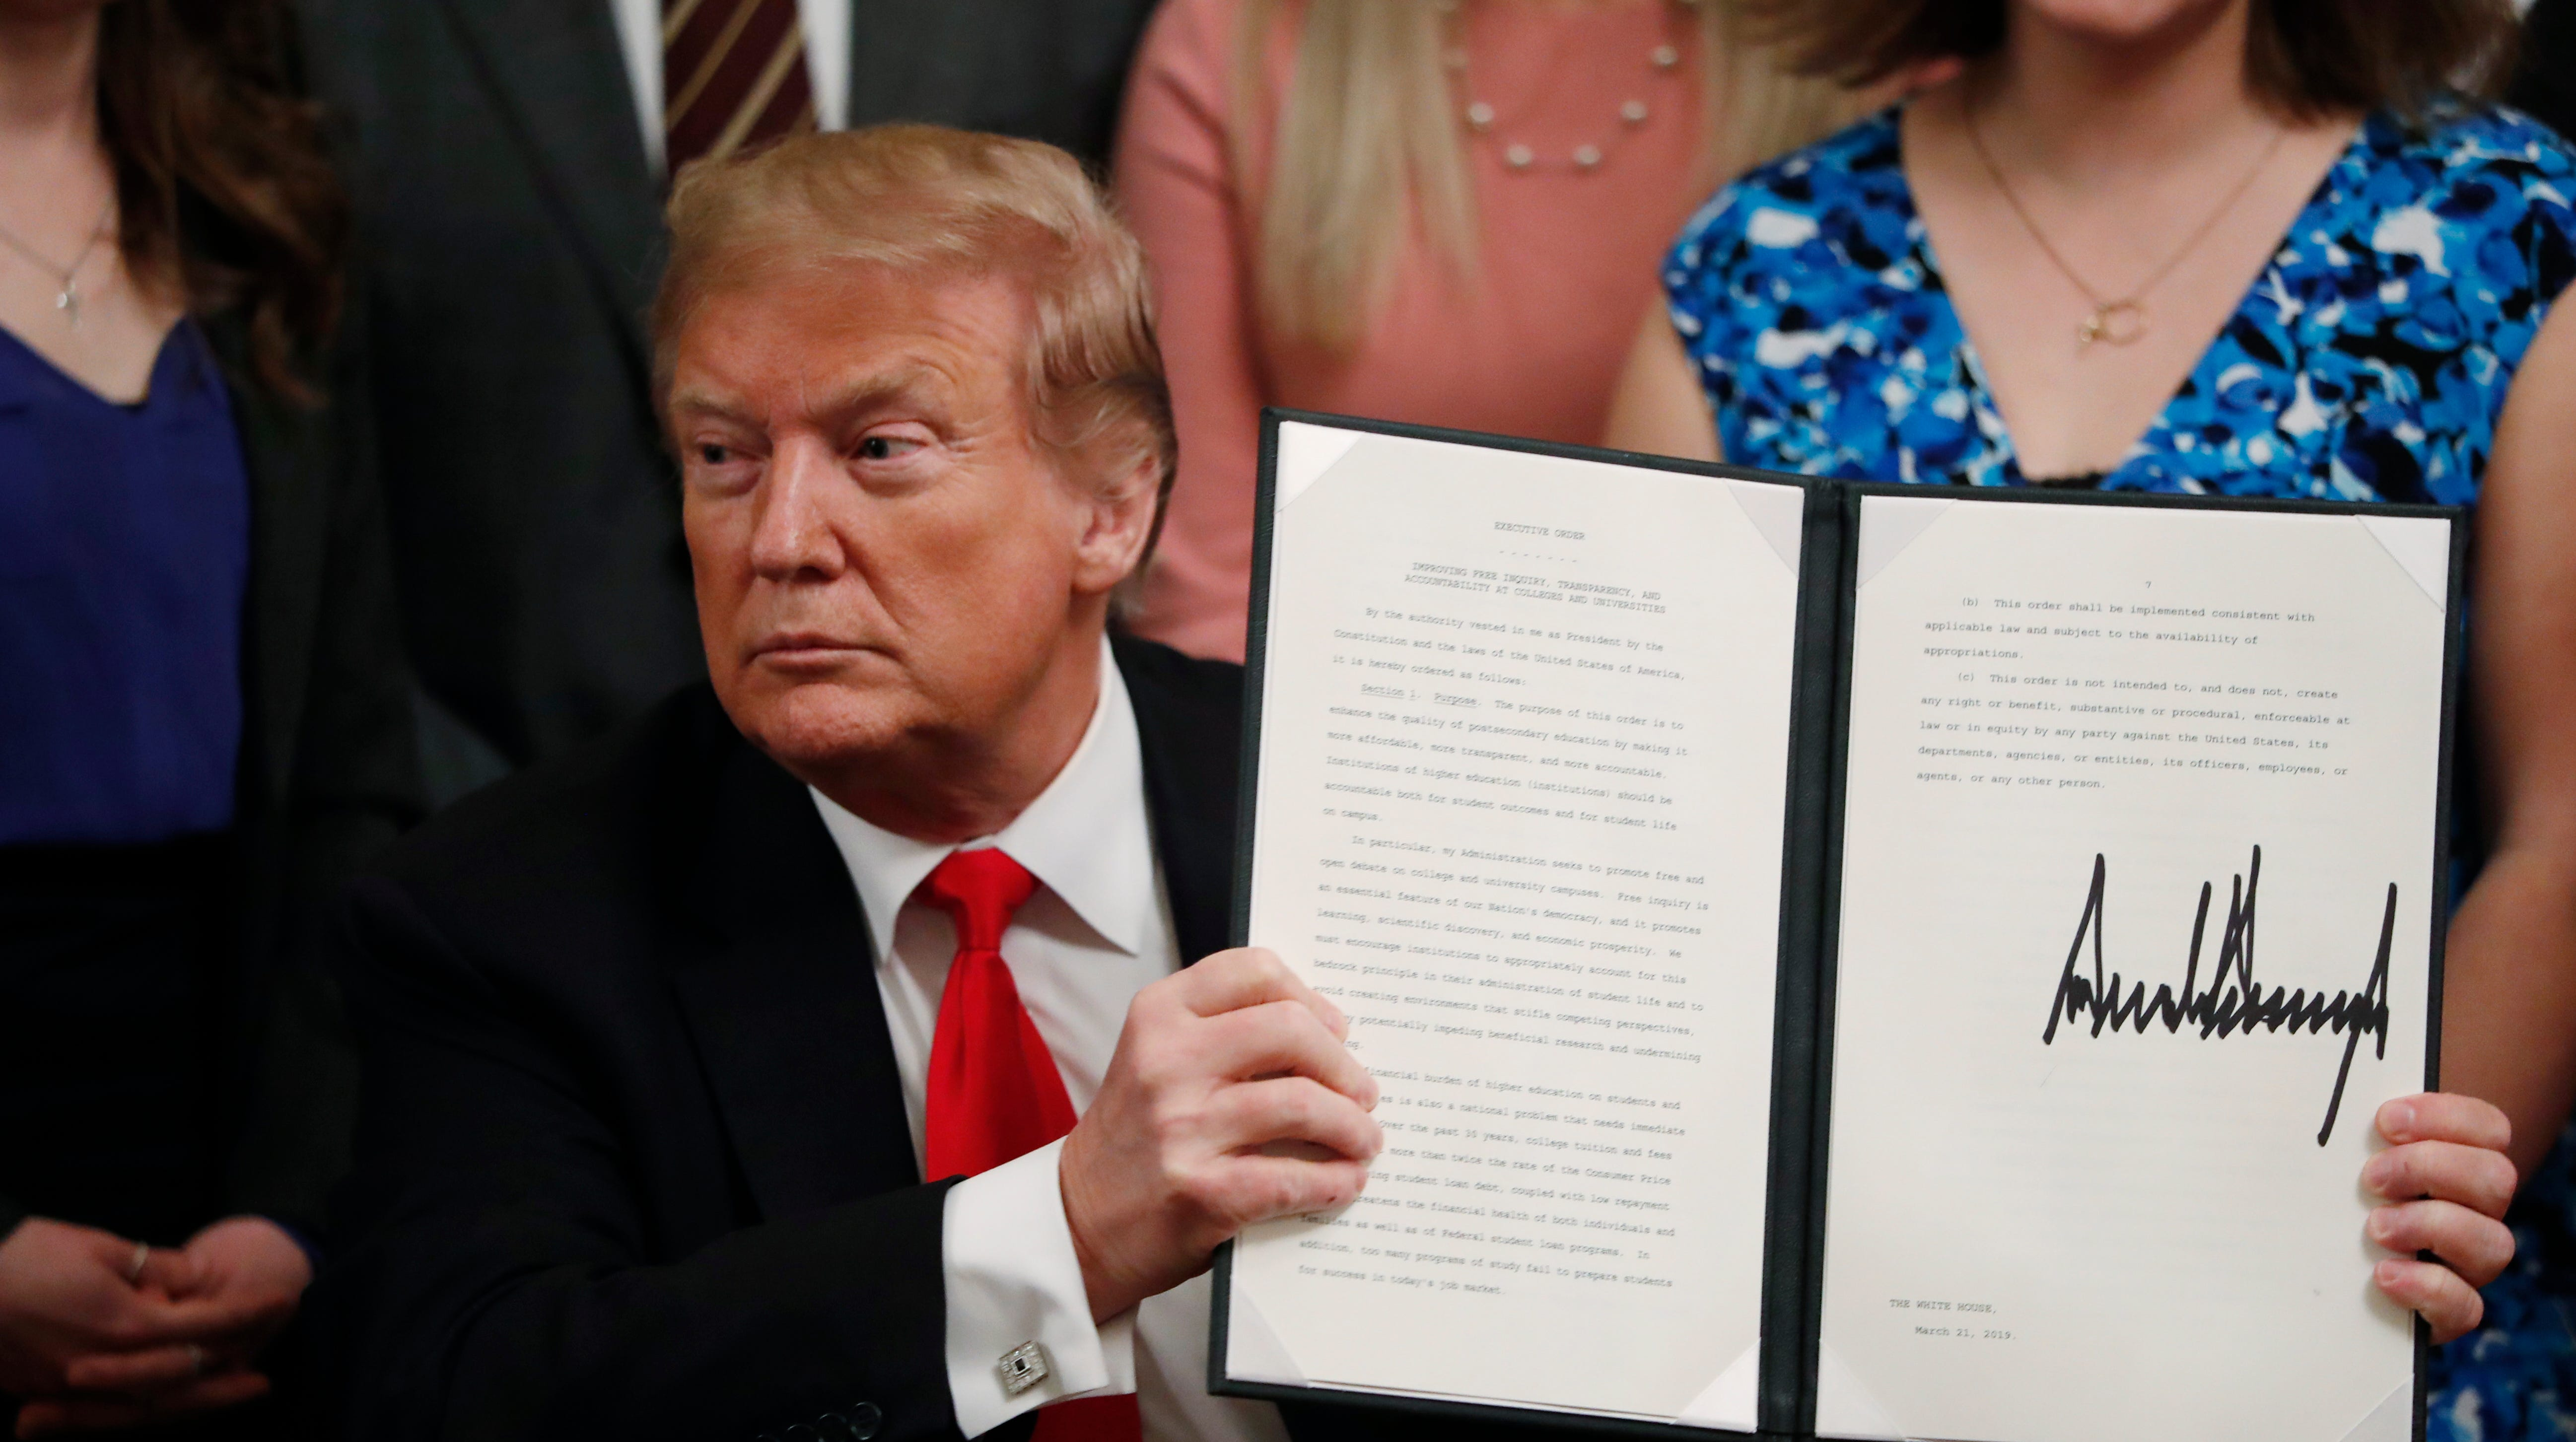 President Donald Trump holds up an executive order requiring colleges to certify that their policies support free speech as a condition of receiving federal research grants, after signing, Thursday March 21, 2019, in the East Room of the White House in Washington. (AP Photo/Jacquelyn Martin) ORG XMIT: DCJM209